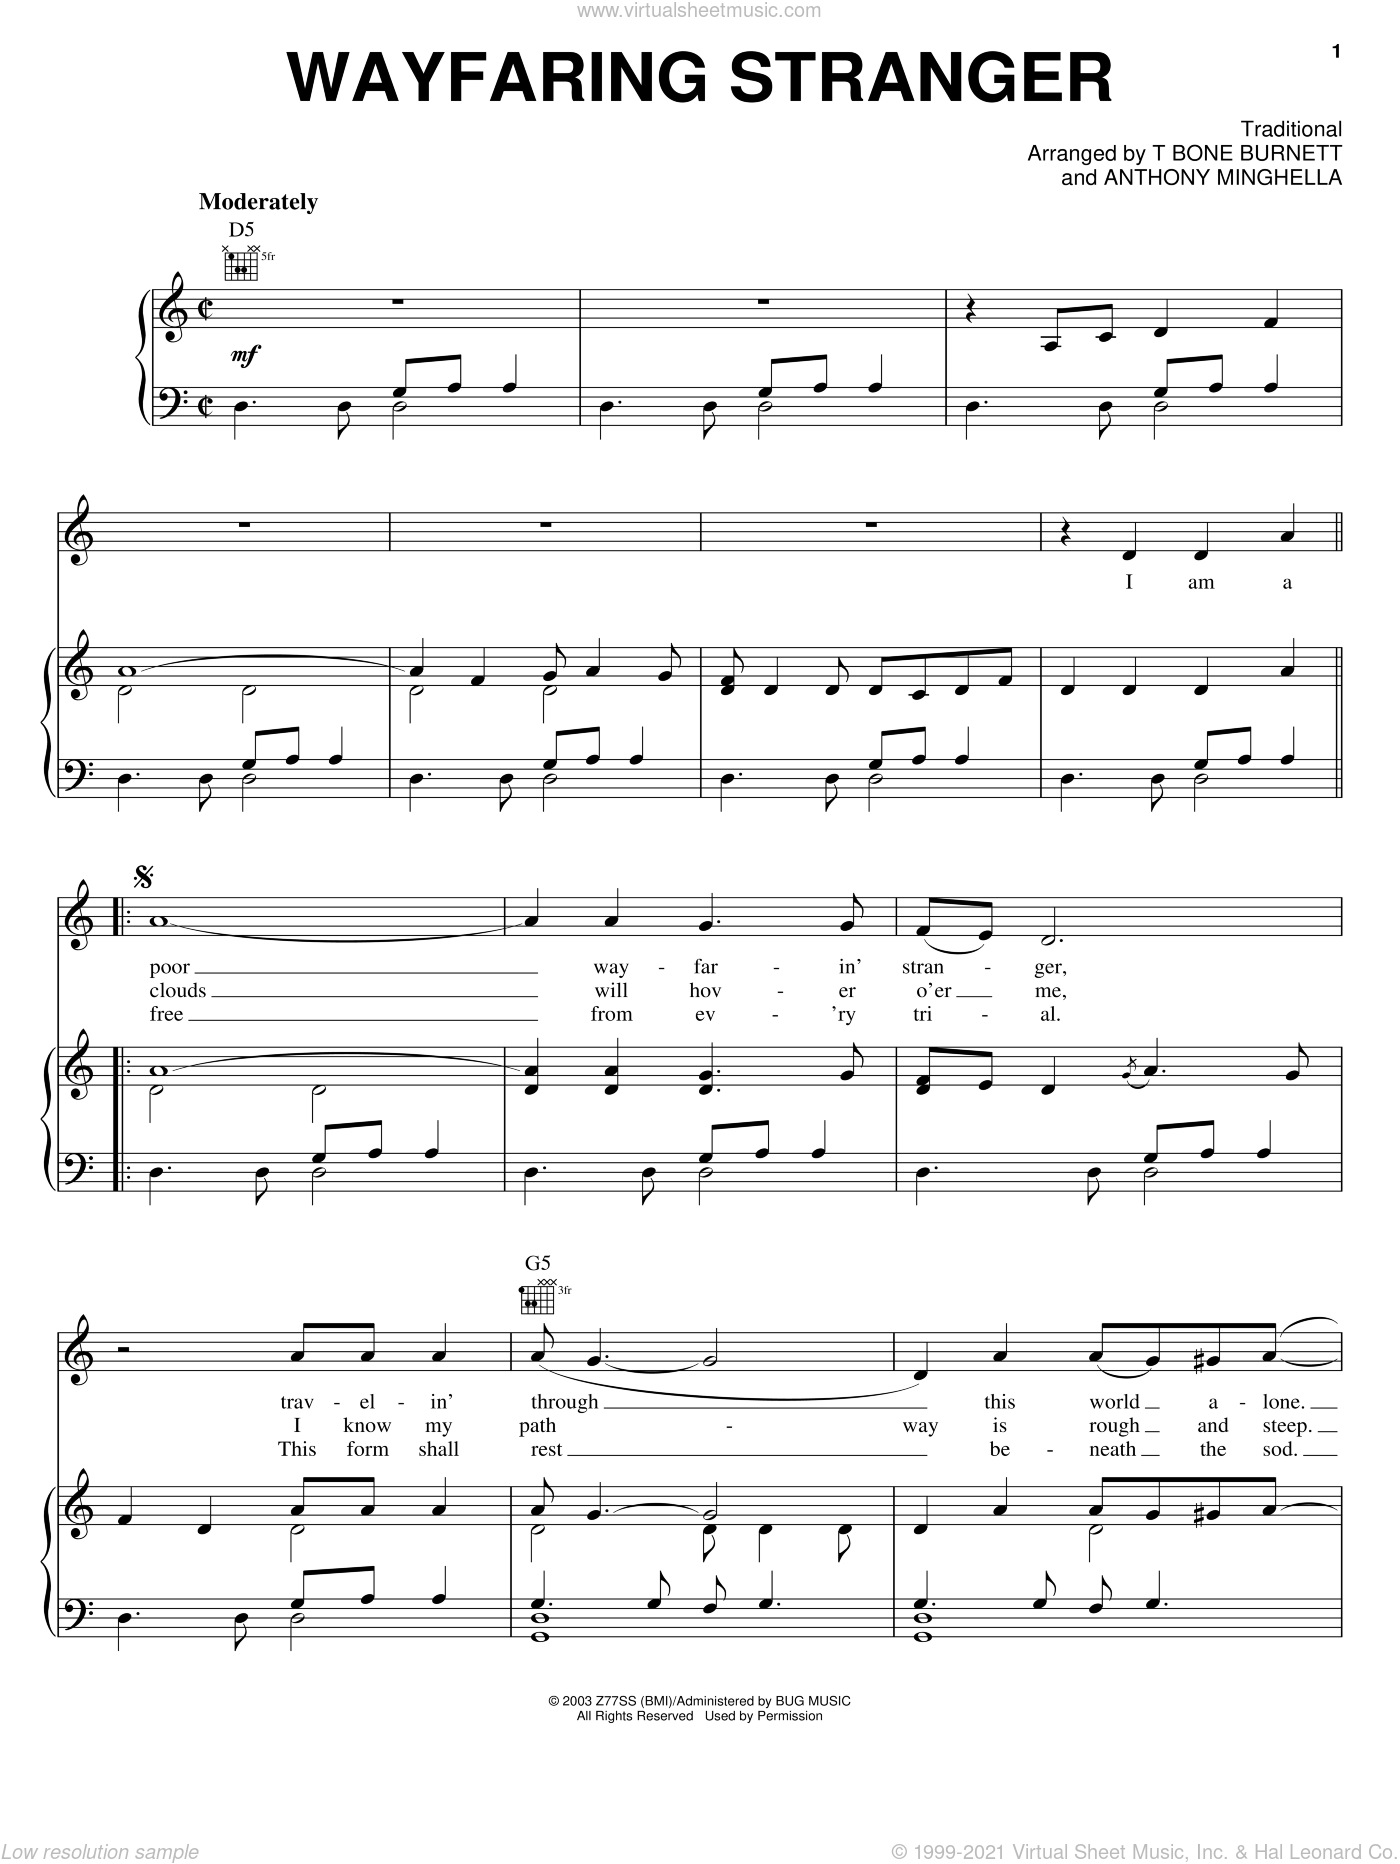 Wayfaring Stranger sheet music for voice, piano or guitar by Anthony Minghella, Jack White, Johnny Cash and T-Bone Burnett. Score Image Preview.